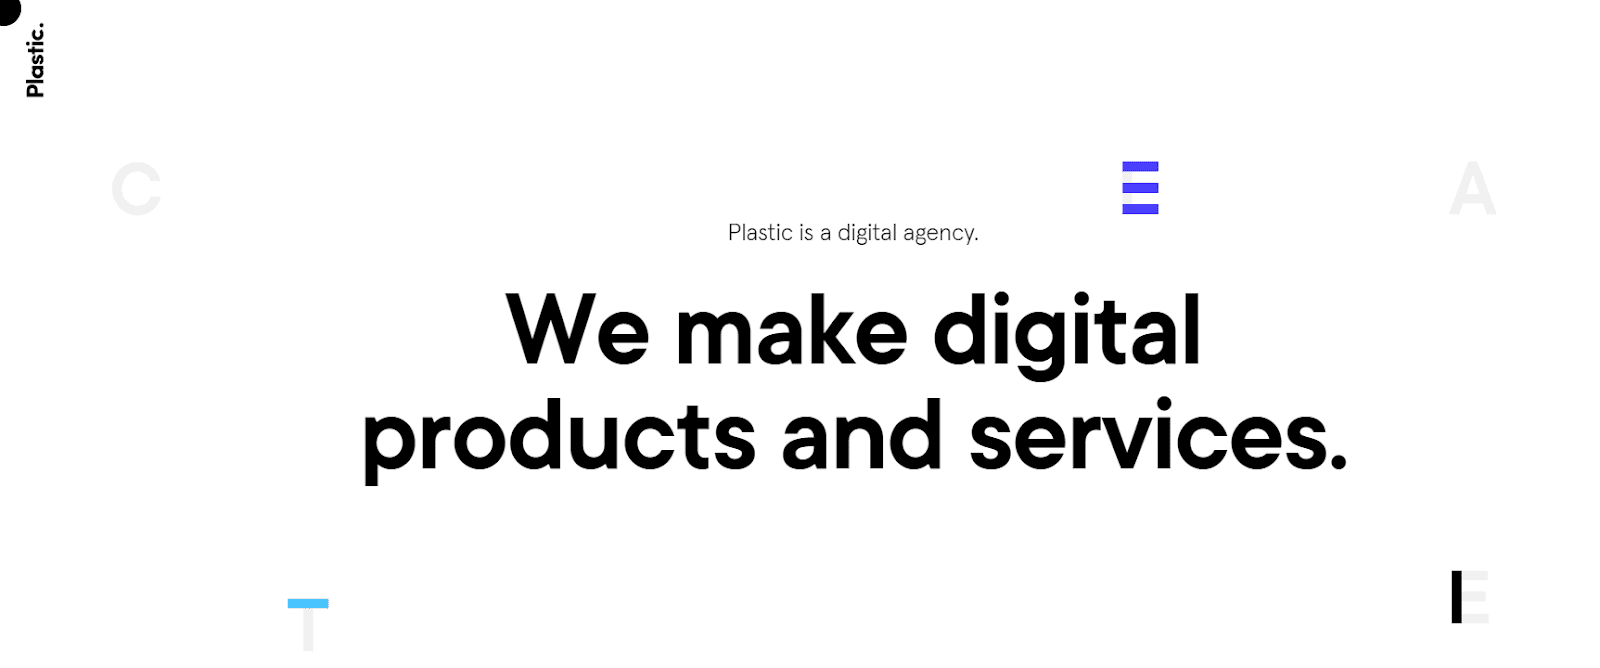 We make digital products and services.